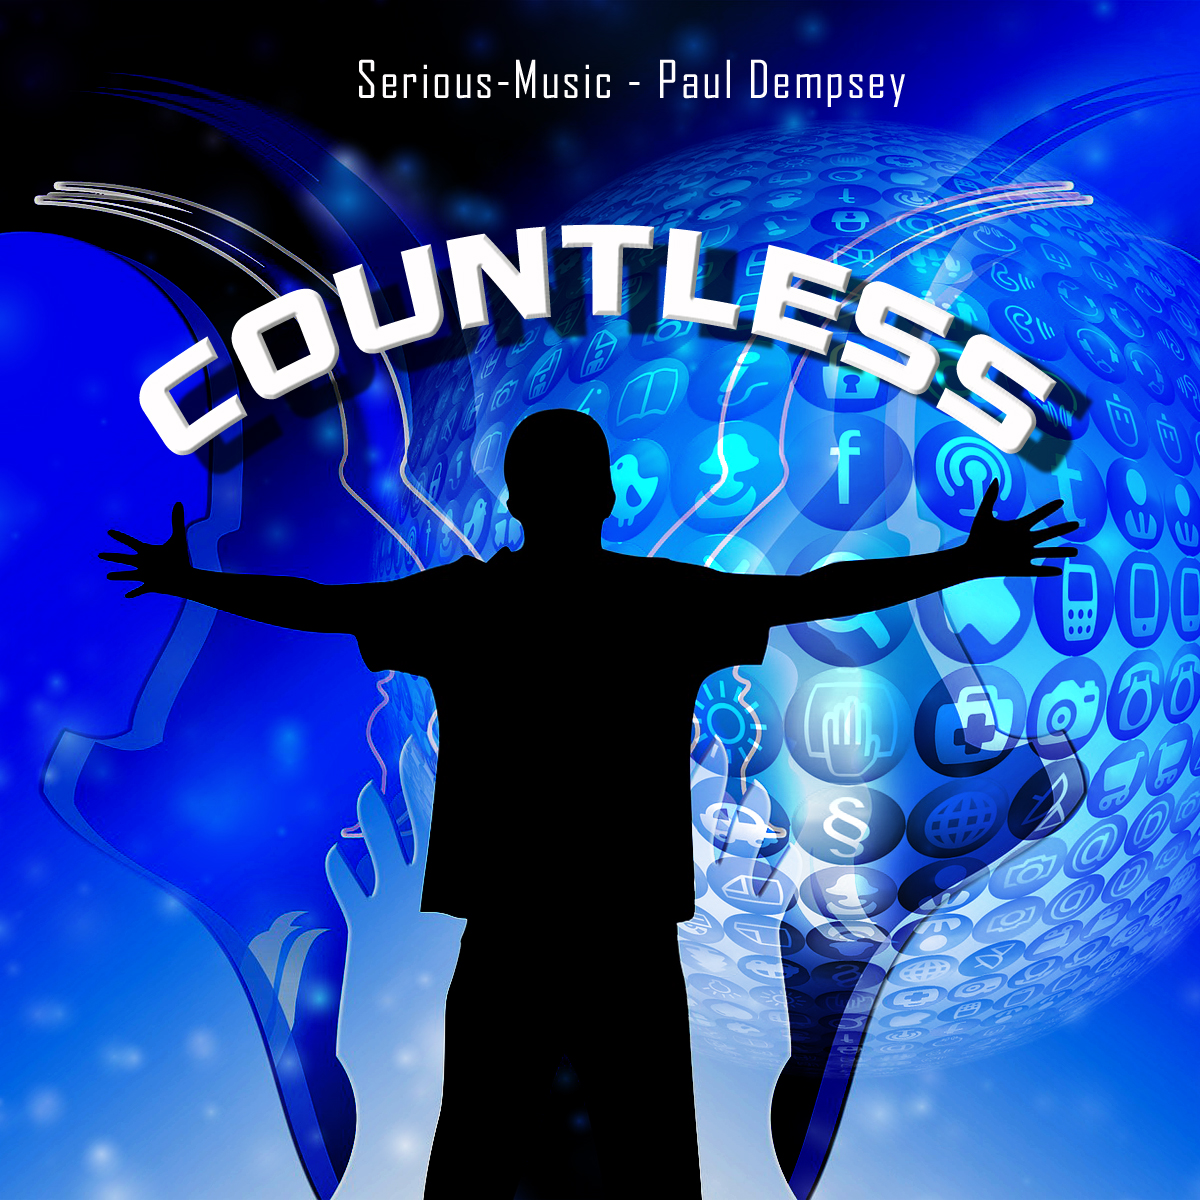 Countless feat. Paul Dempsey - SINGLE